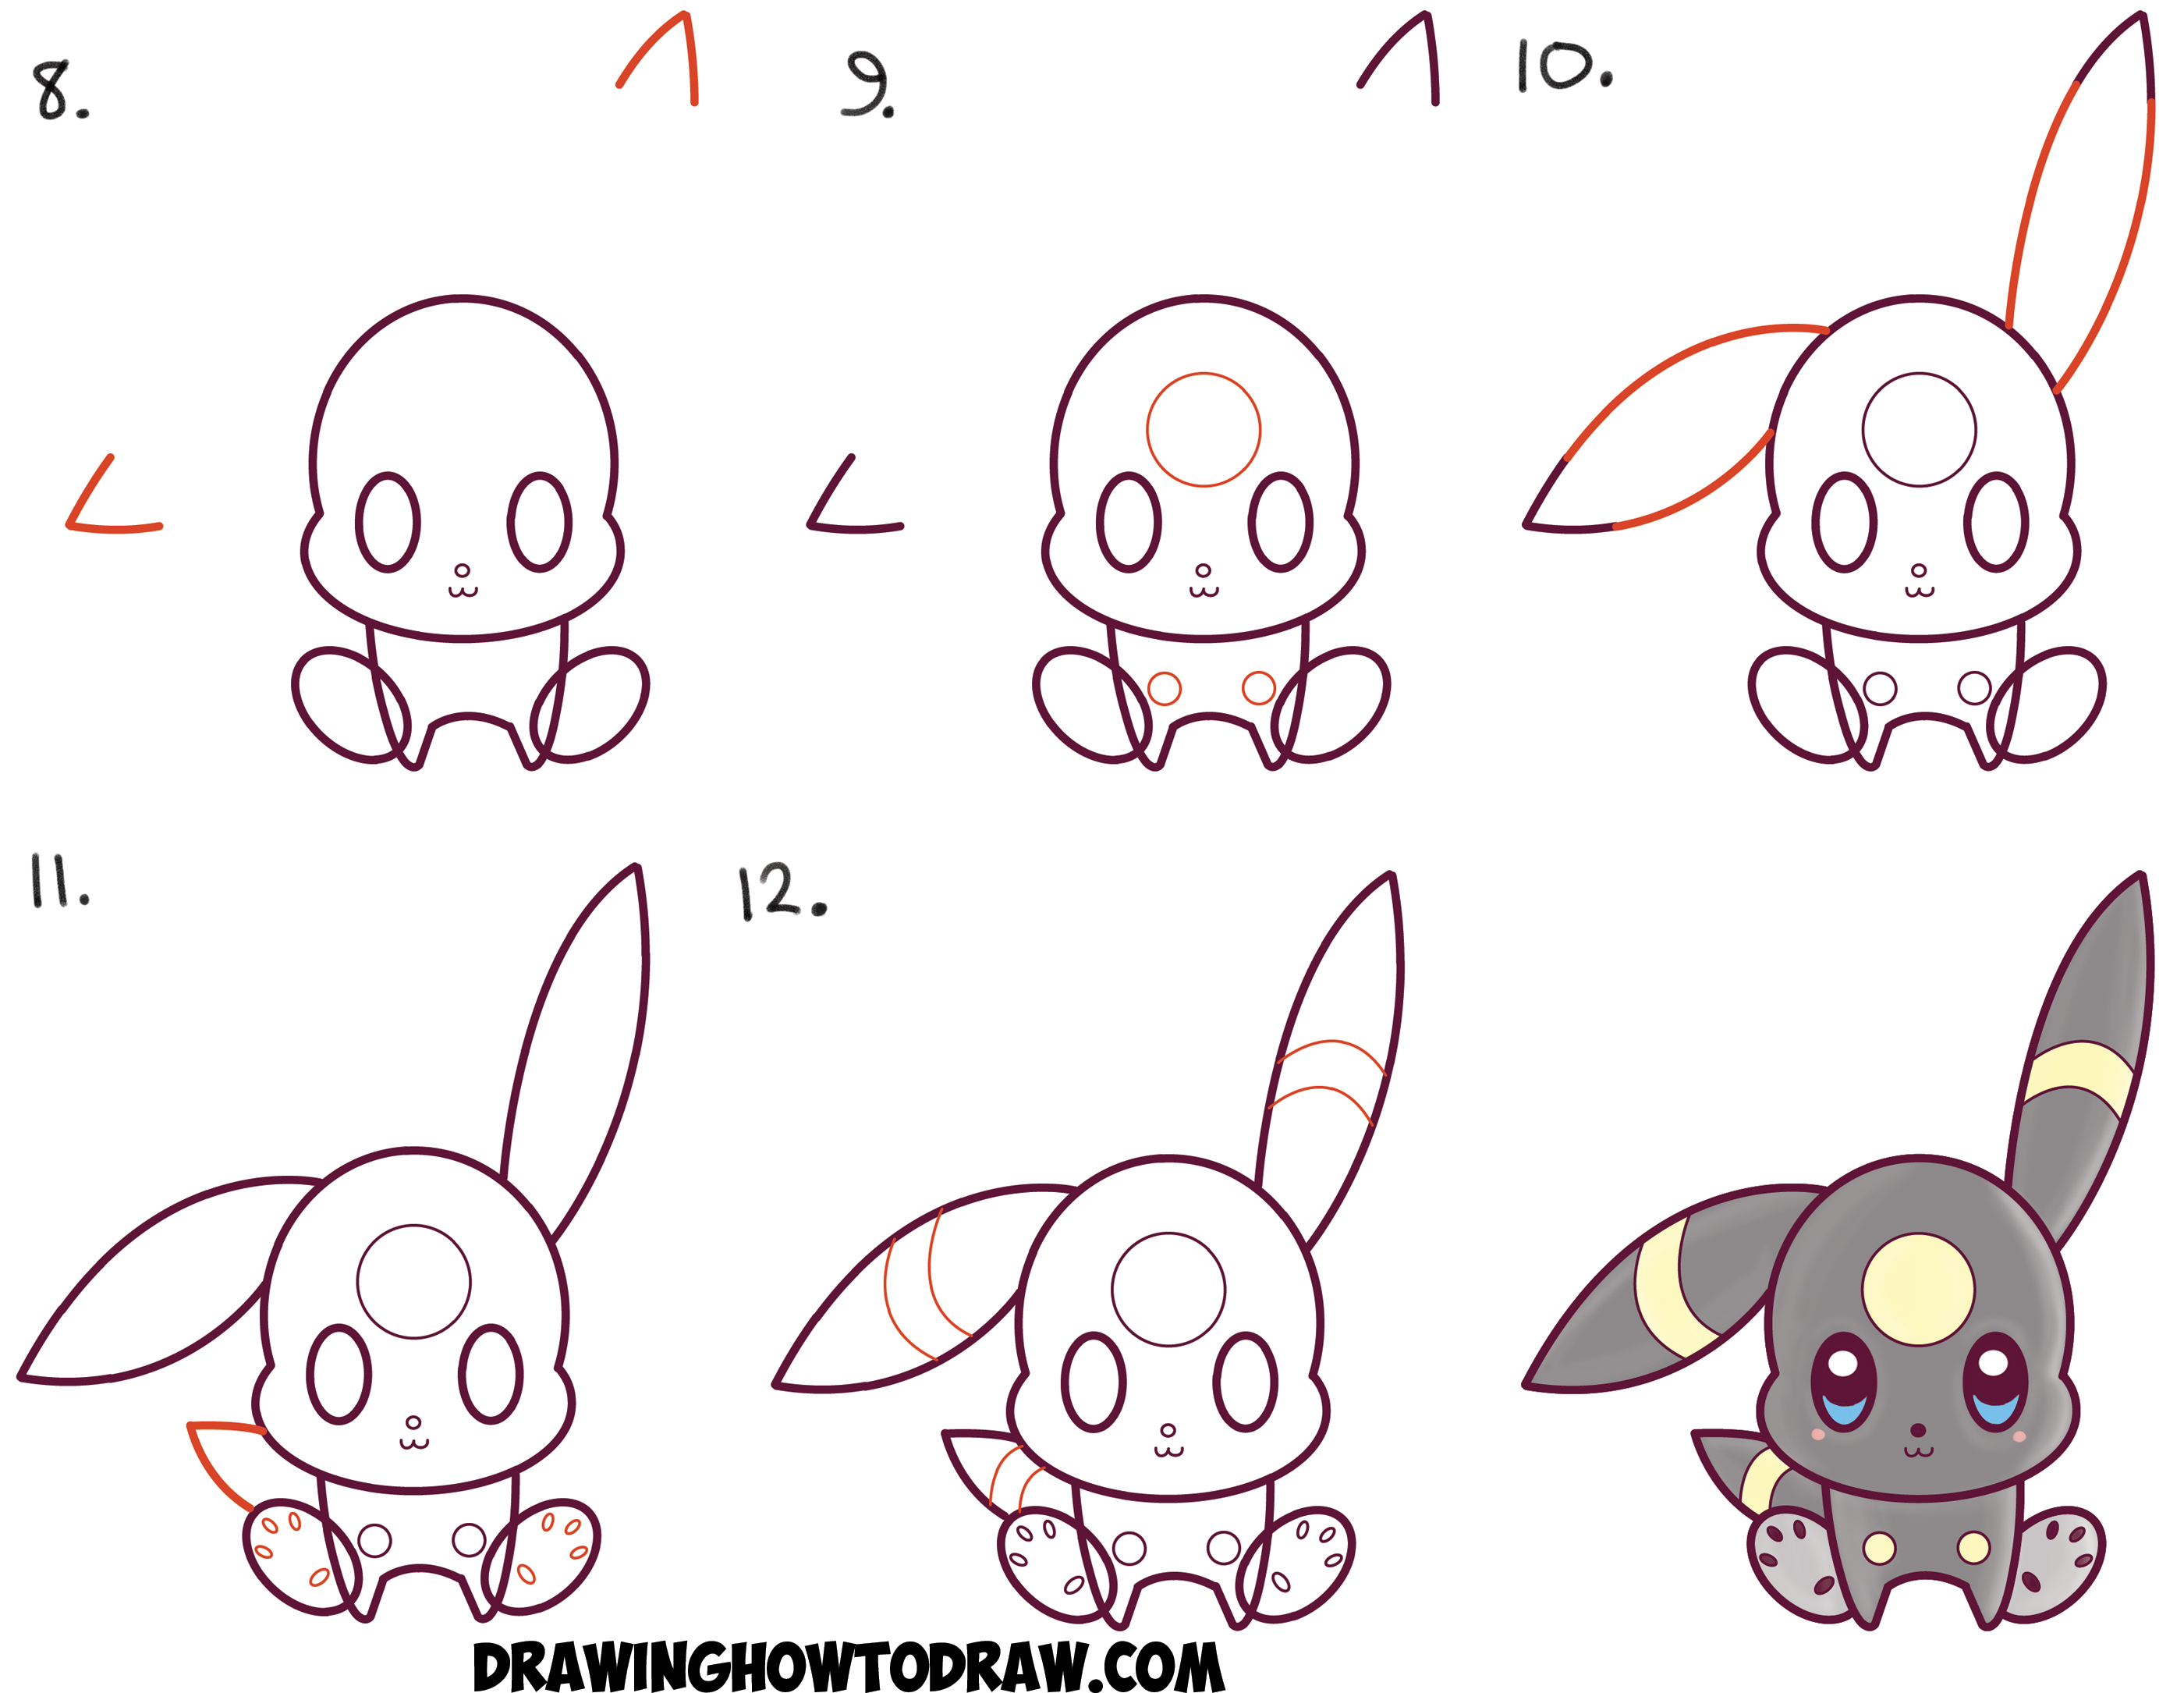 How To Draw Cute Kawaii Chibi Umbreon From Pokemon Easy Step By Step Drawing Tutorial For Kids How To Draw Step By Step Drawing Tutorials